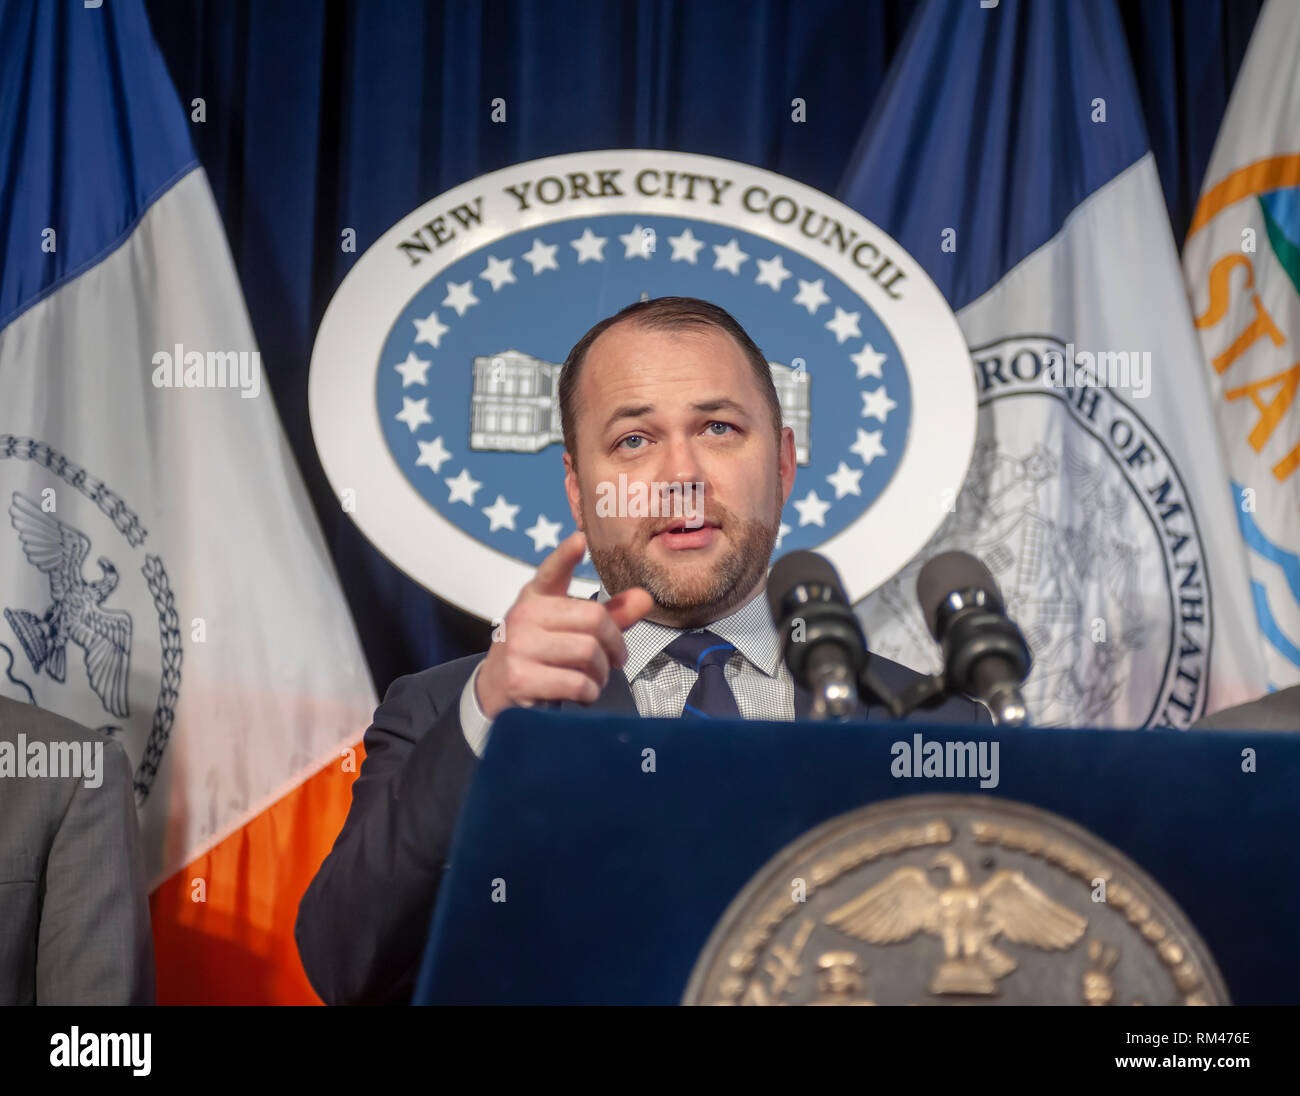 New York, USA. 13th Feb, 2019. New York City Council Speaker and Acting Public Advocate Corey Johnson and members of the New York City Council hold a news conference on Wednesday, February 13, 2019 in the Red Room of New York City Hall. Besides speaking about pending legislation Johnson spoke about allegedly homophobic remarks made by Council Member Ruben Diaz Sr. and the Speaker's plan to dissolve the FHV Committee of which Diaz is the chairman. ( © Richard B. Levine) Credit: Richard Levine/Alamy Live News - Stock Image